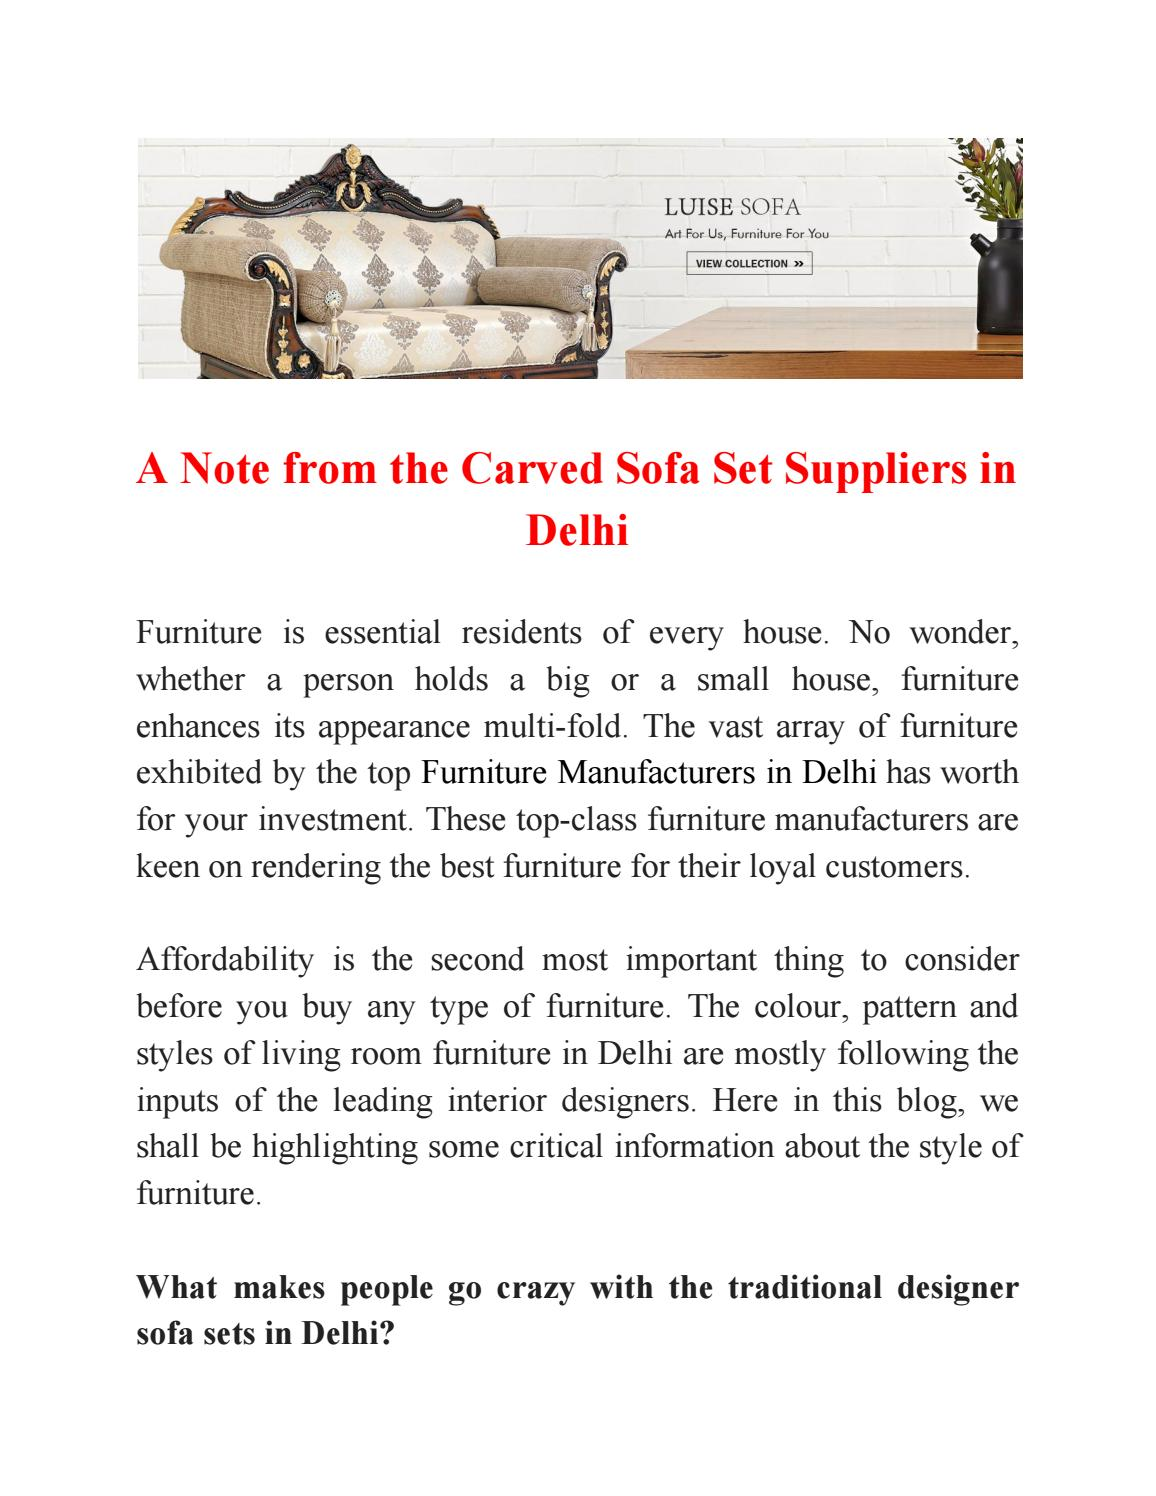 Sofa House Kirti Nagar A Note From The Carved Sofa Set Suppliers In Delhi By